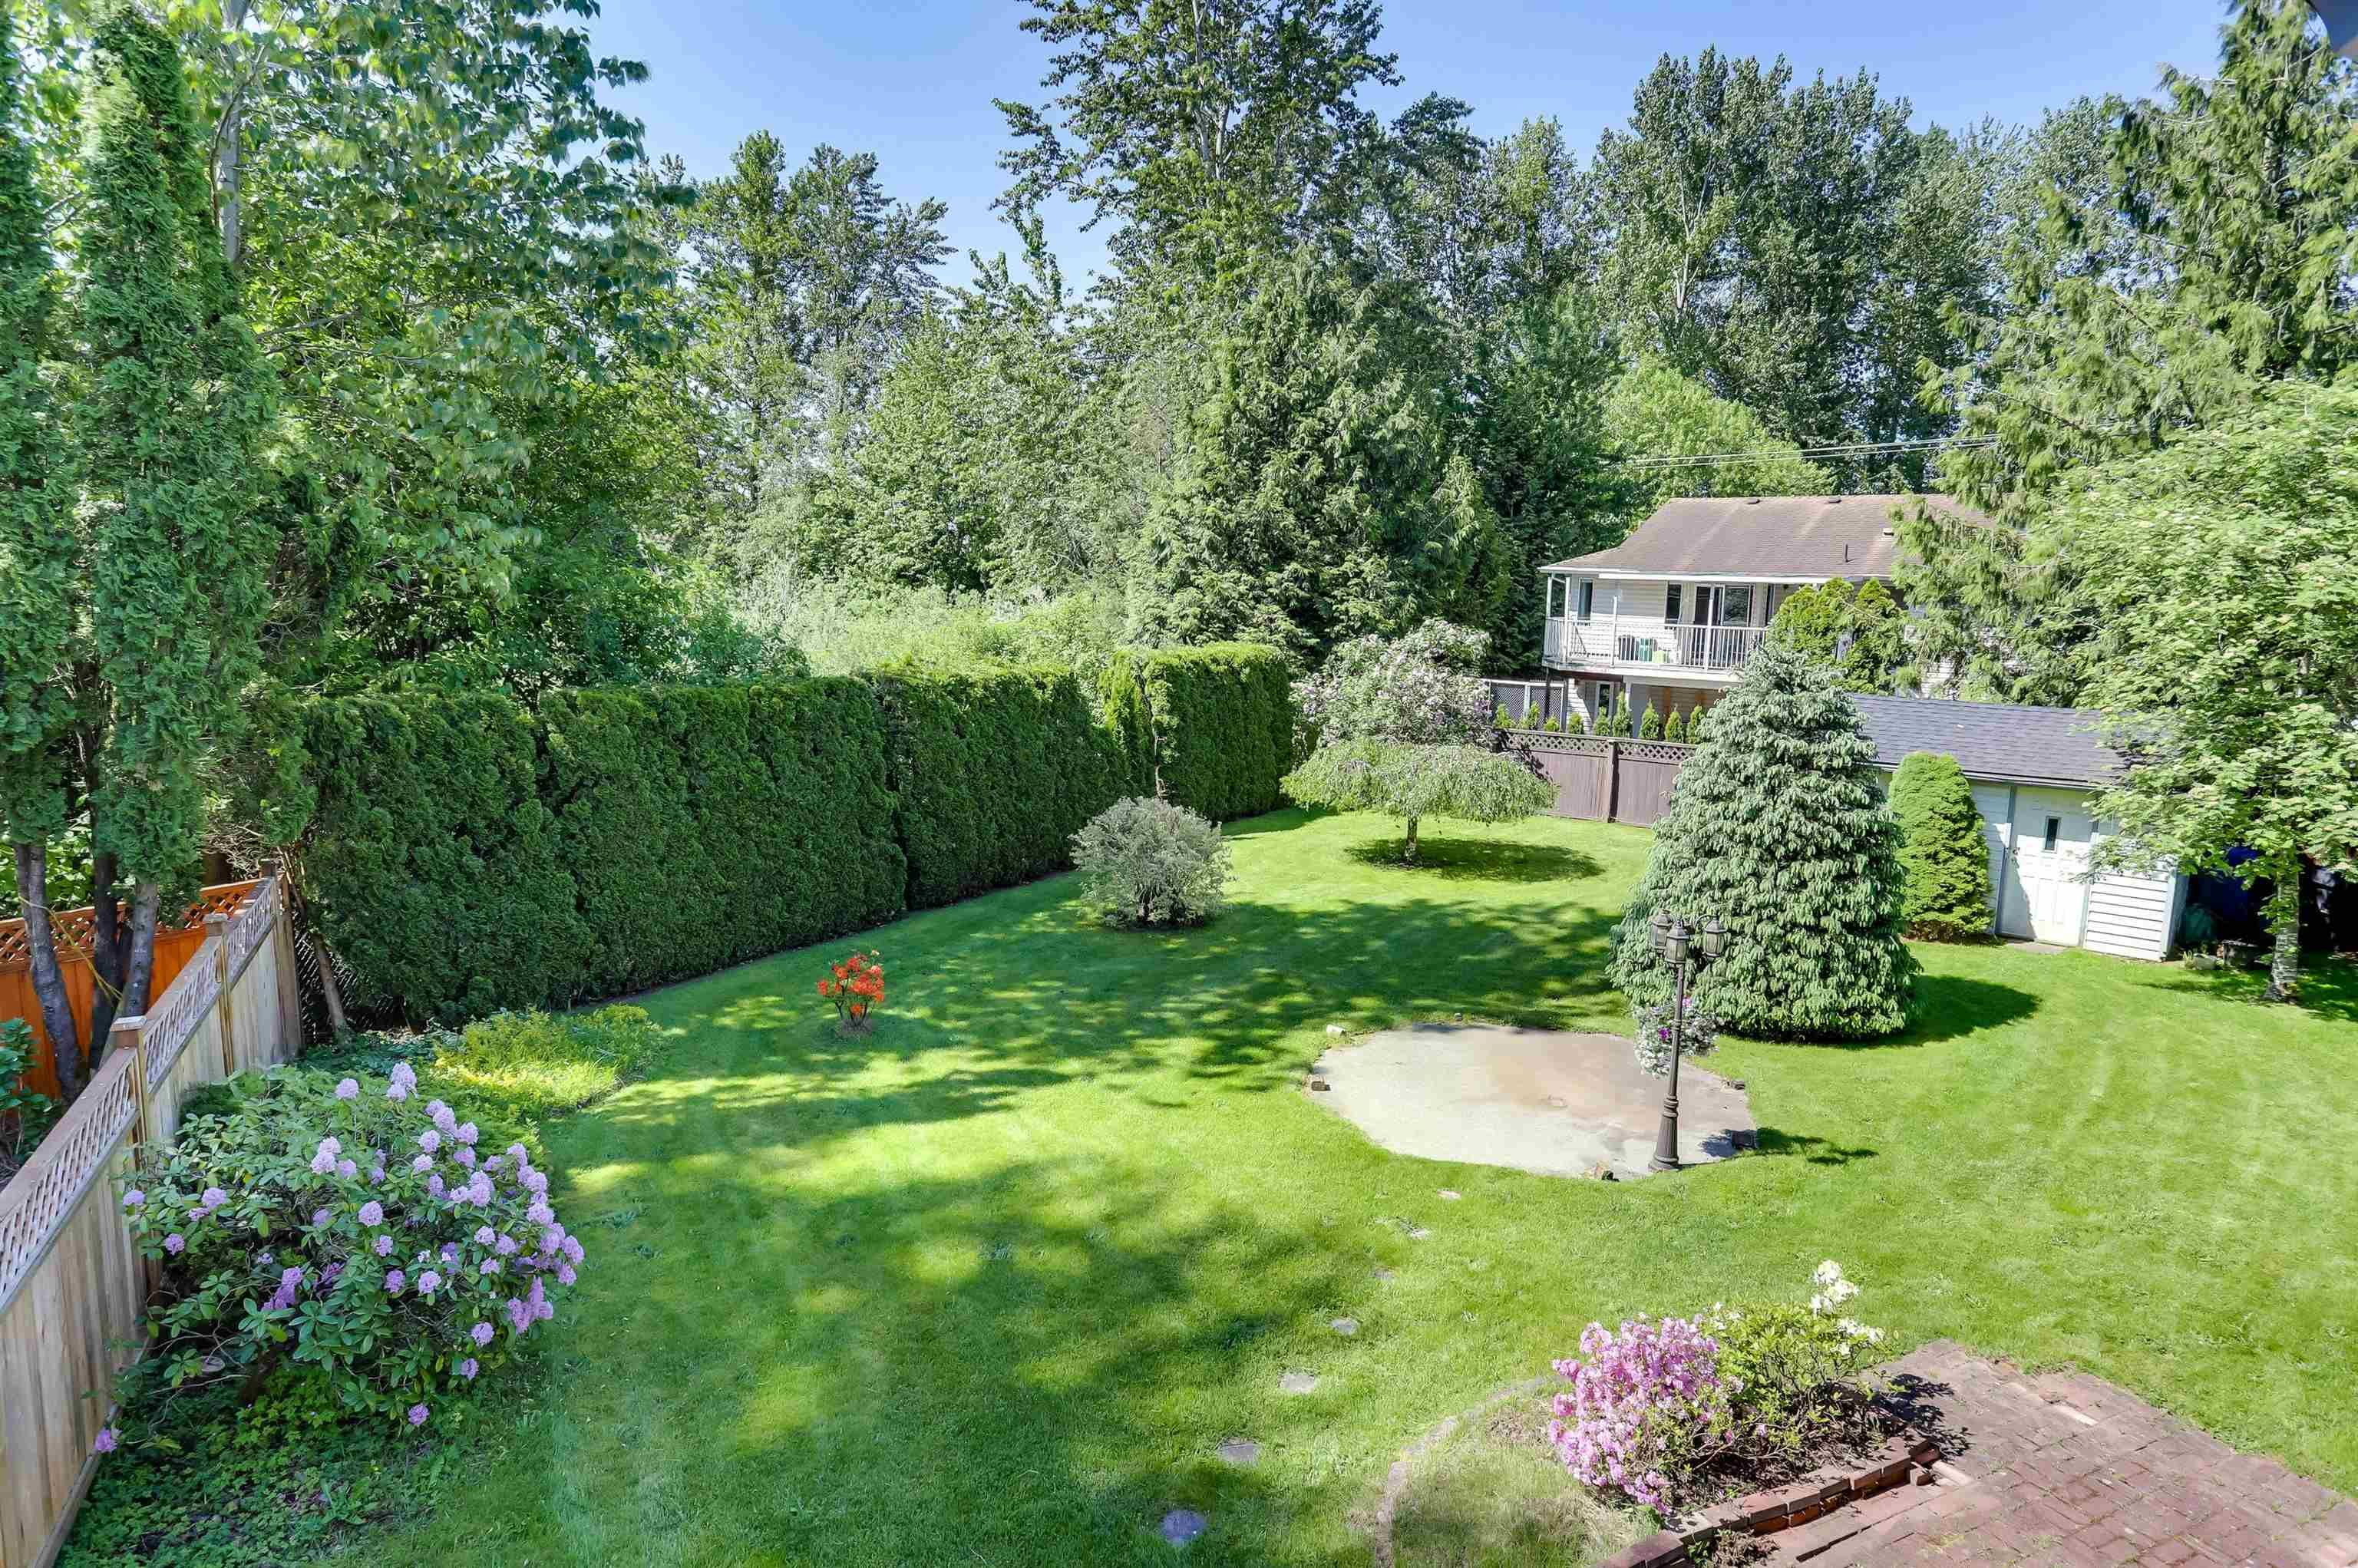 Main Photo: 2701 DEHAVILLAND Court in Abbotsford: Abbotsford West House for sale : MLS®# R2621738